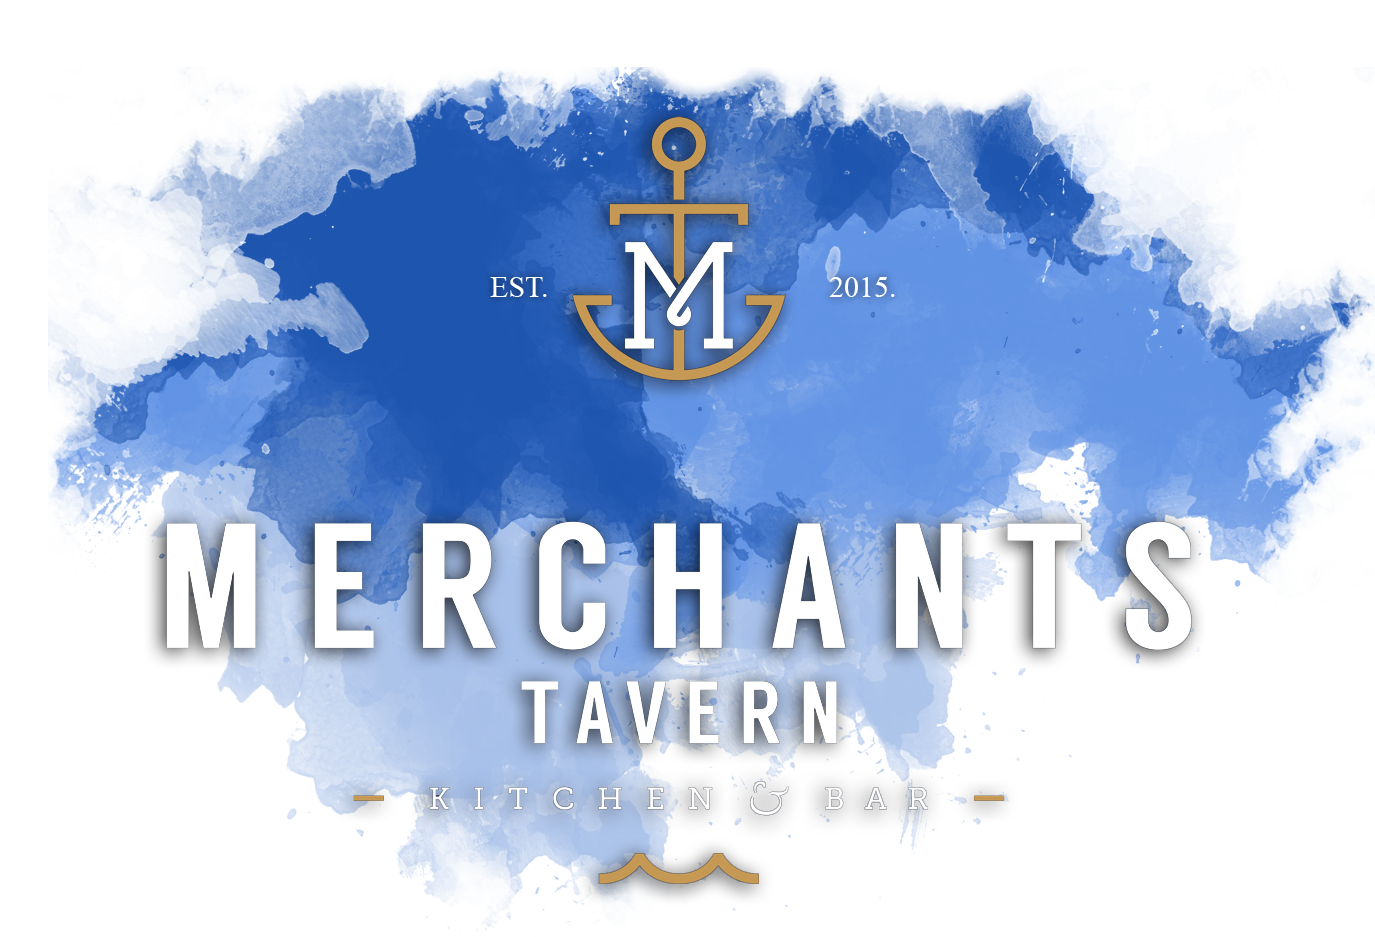 The Merchants Tavern